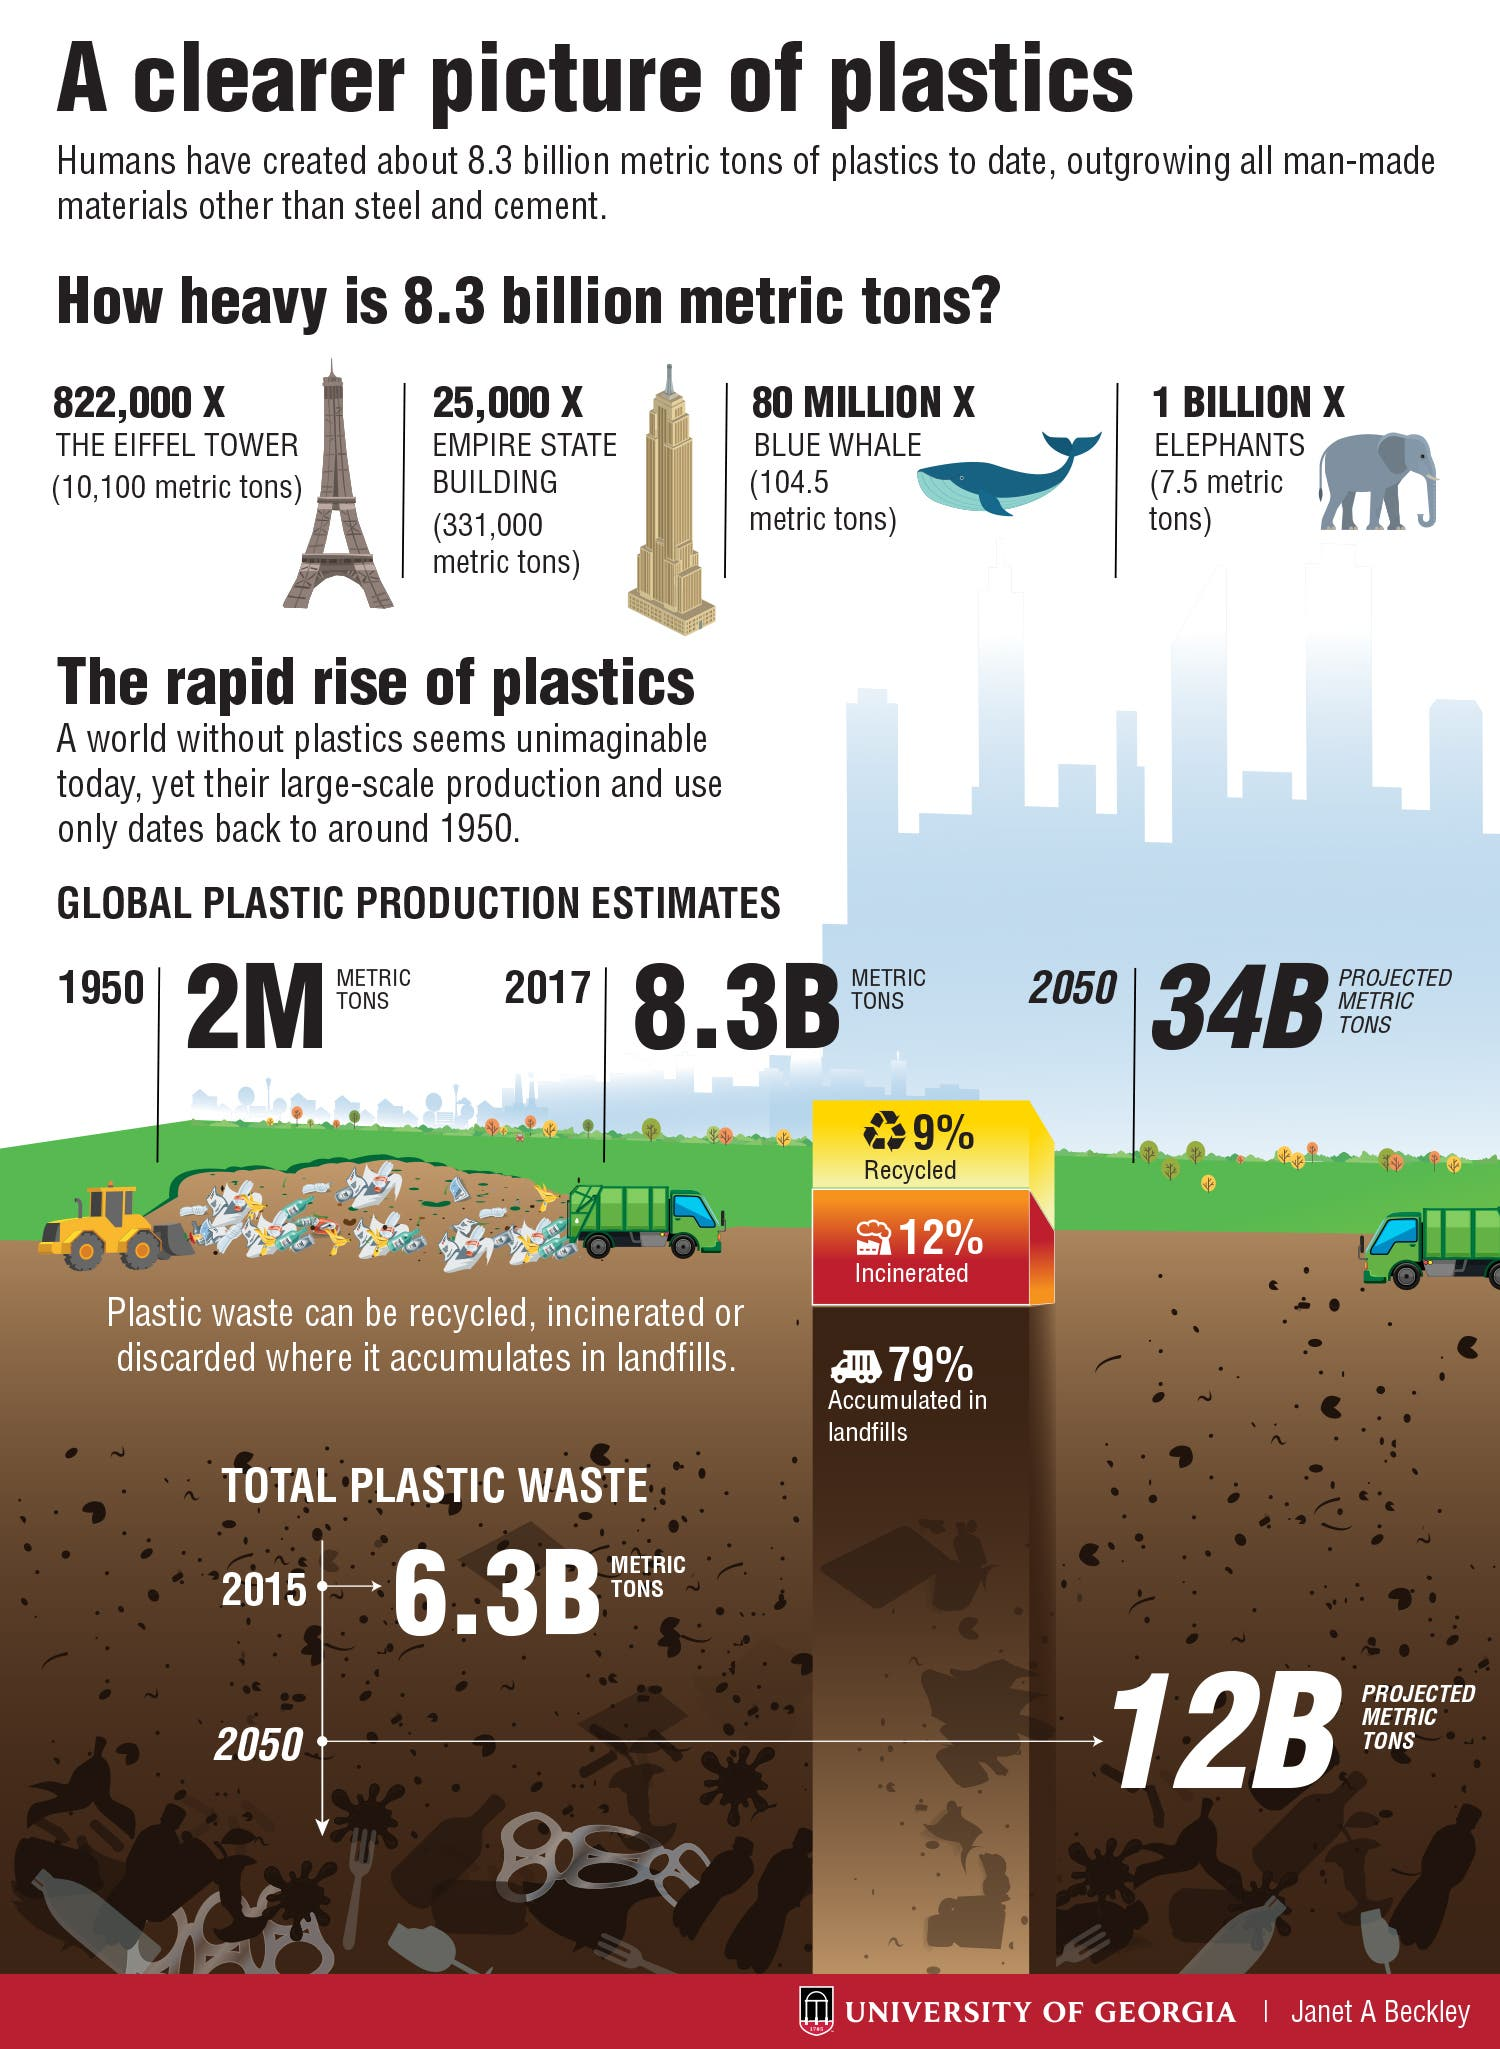 Over 8 3 Billion Metric Tons Of Plastics Made By Humans To